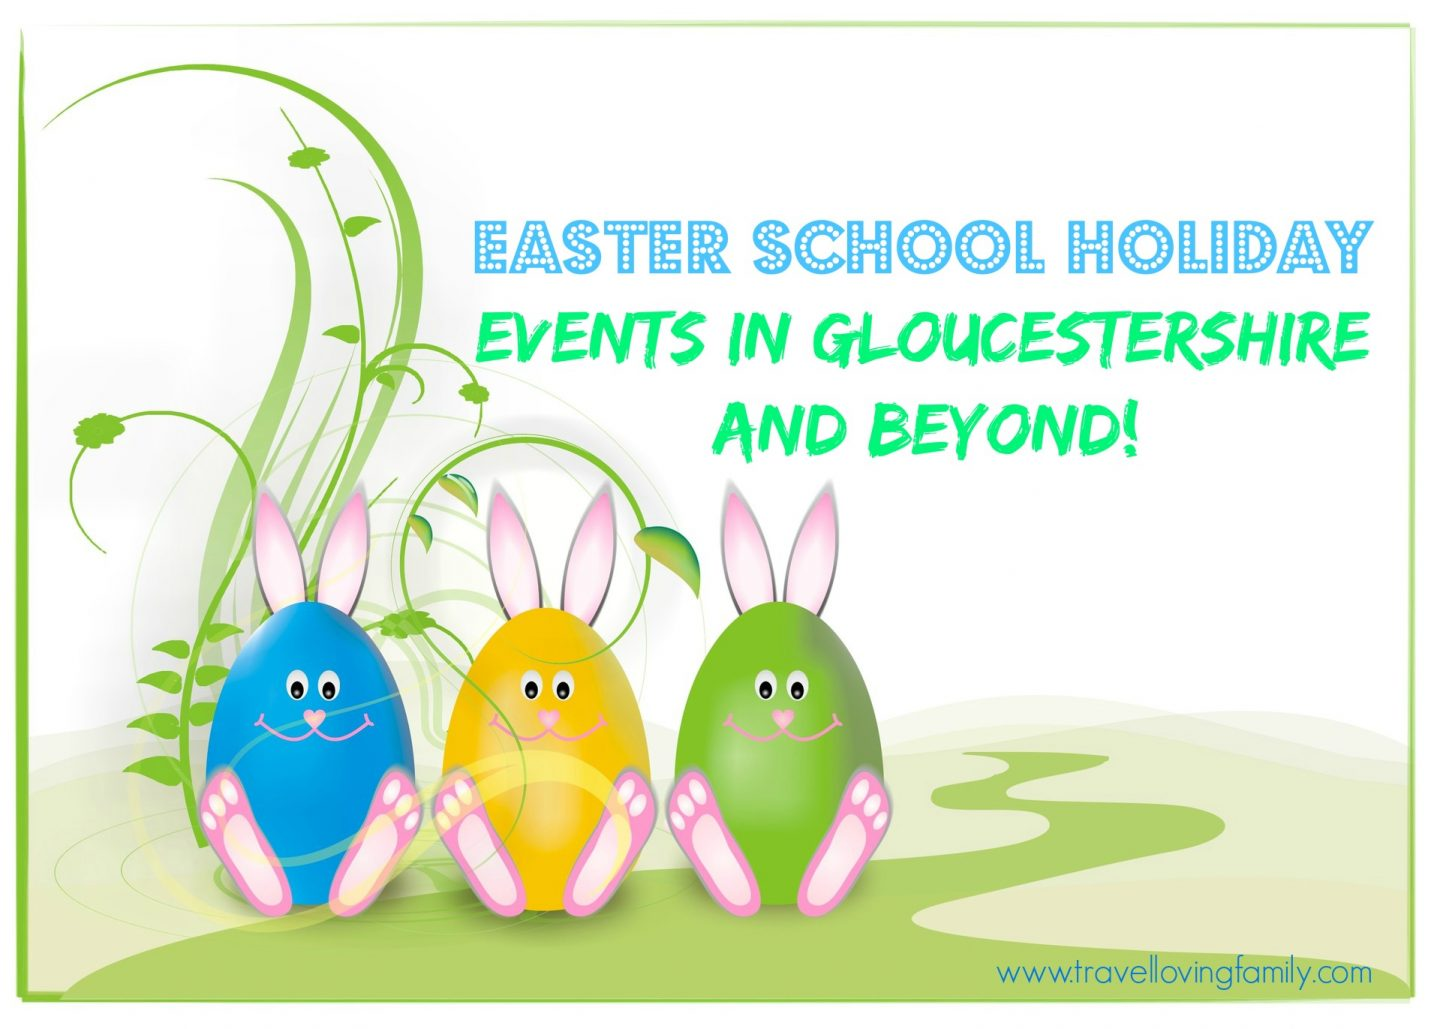 Easter school holiday events in gloucestershire and for What day does easter fall on this year